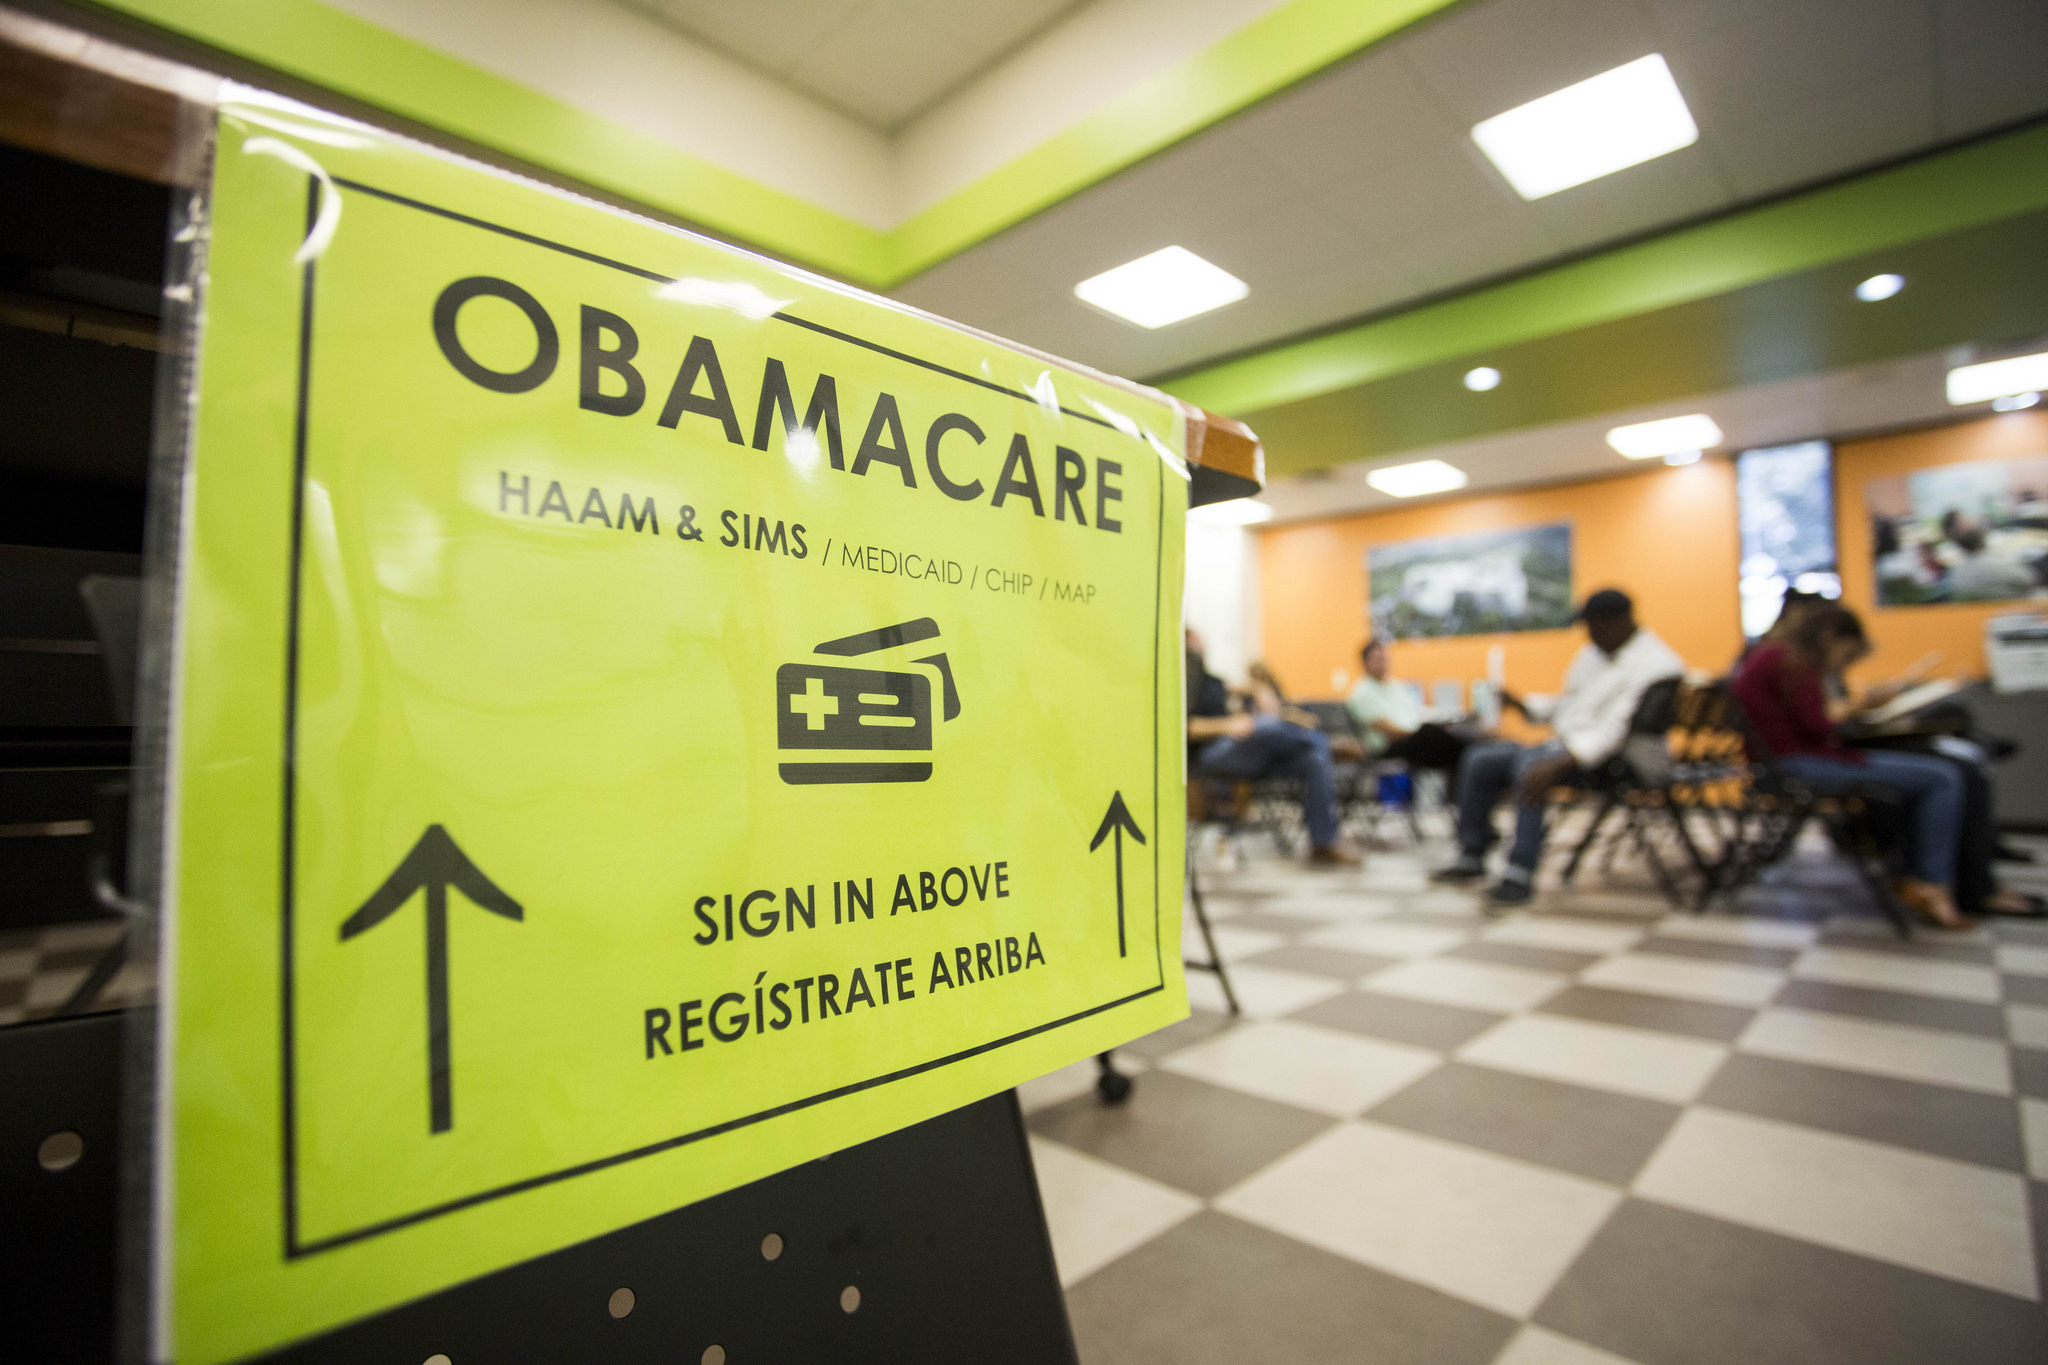 """After campaigning on rhetoric deriding the Affordable Care Act, known as """"Obamacare,"""" healthcare advocates in Central Texas are uncertain whether Trump will make good on his promise to repeal the healthcare law."""